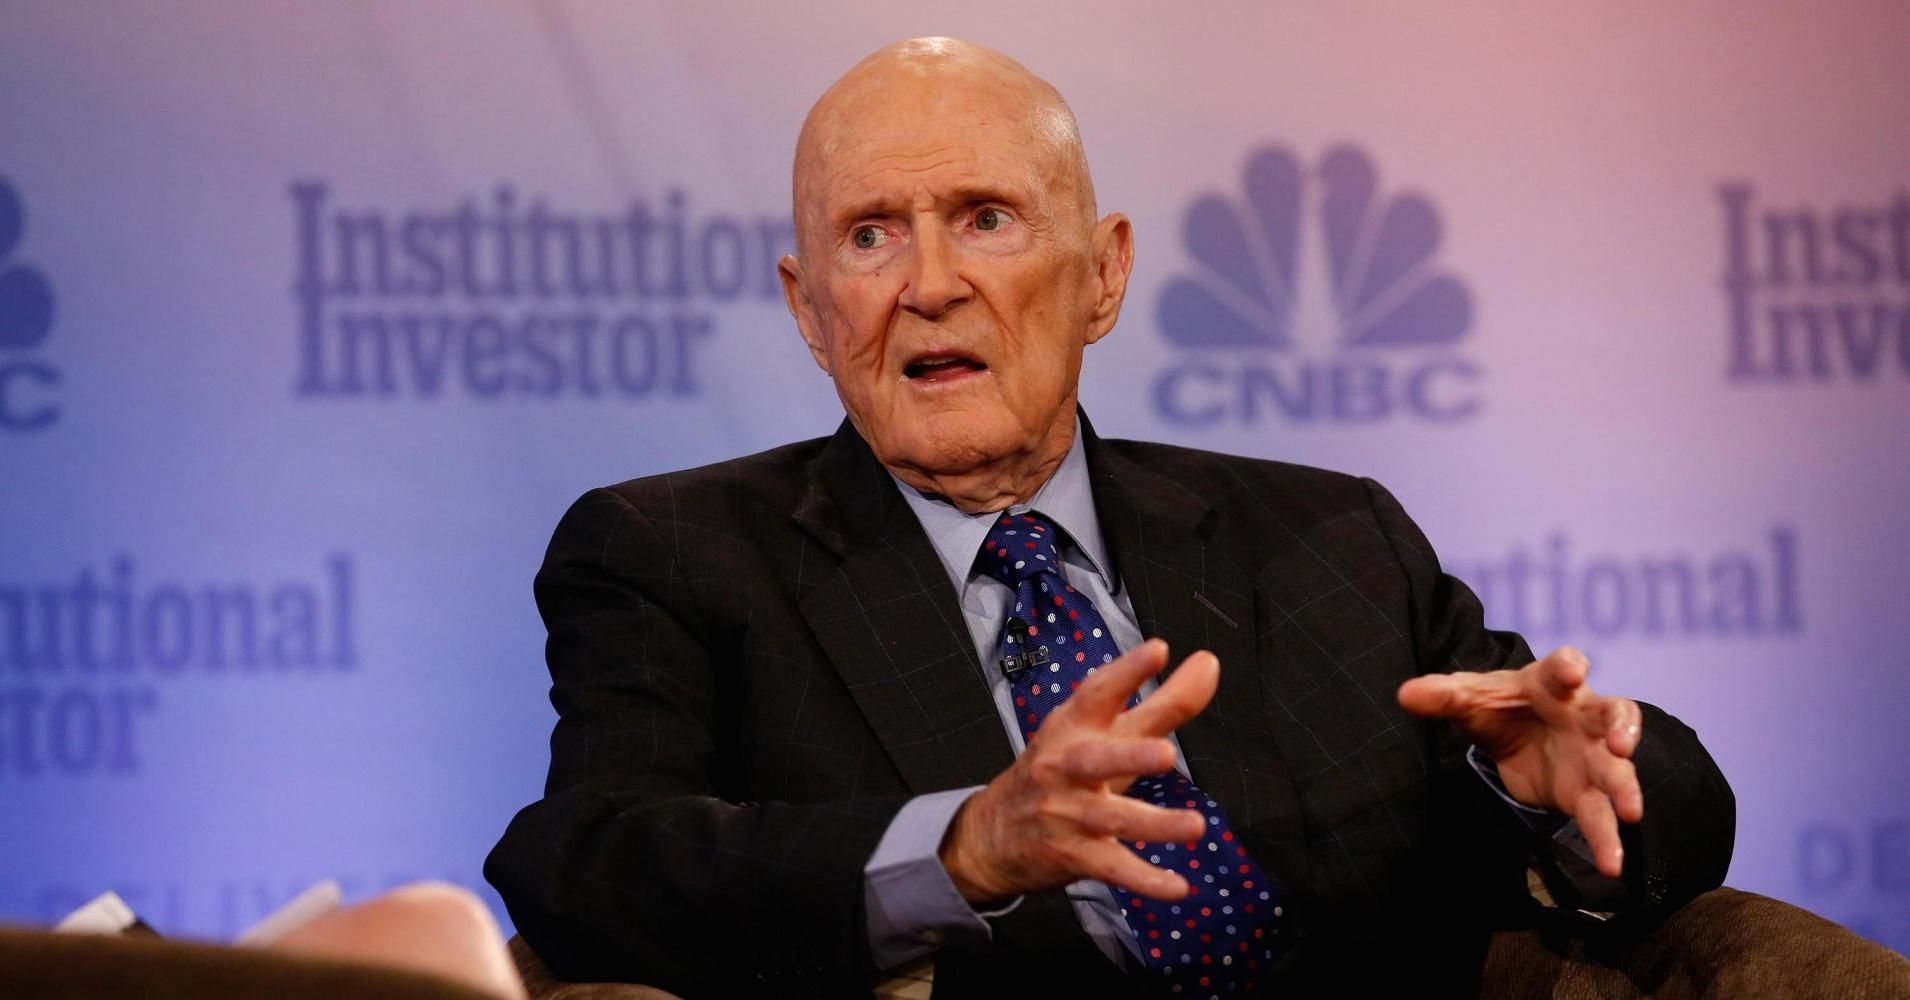 Hedge fund legend julian robertson says we are creating a bubble drudge report aiddatafo Image collections